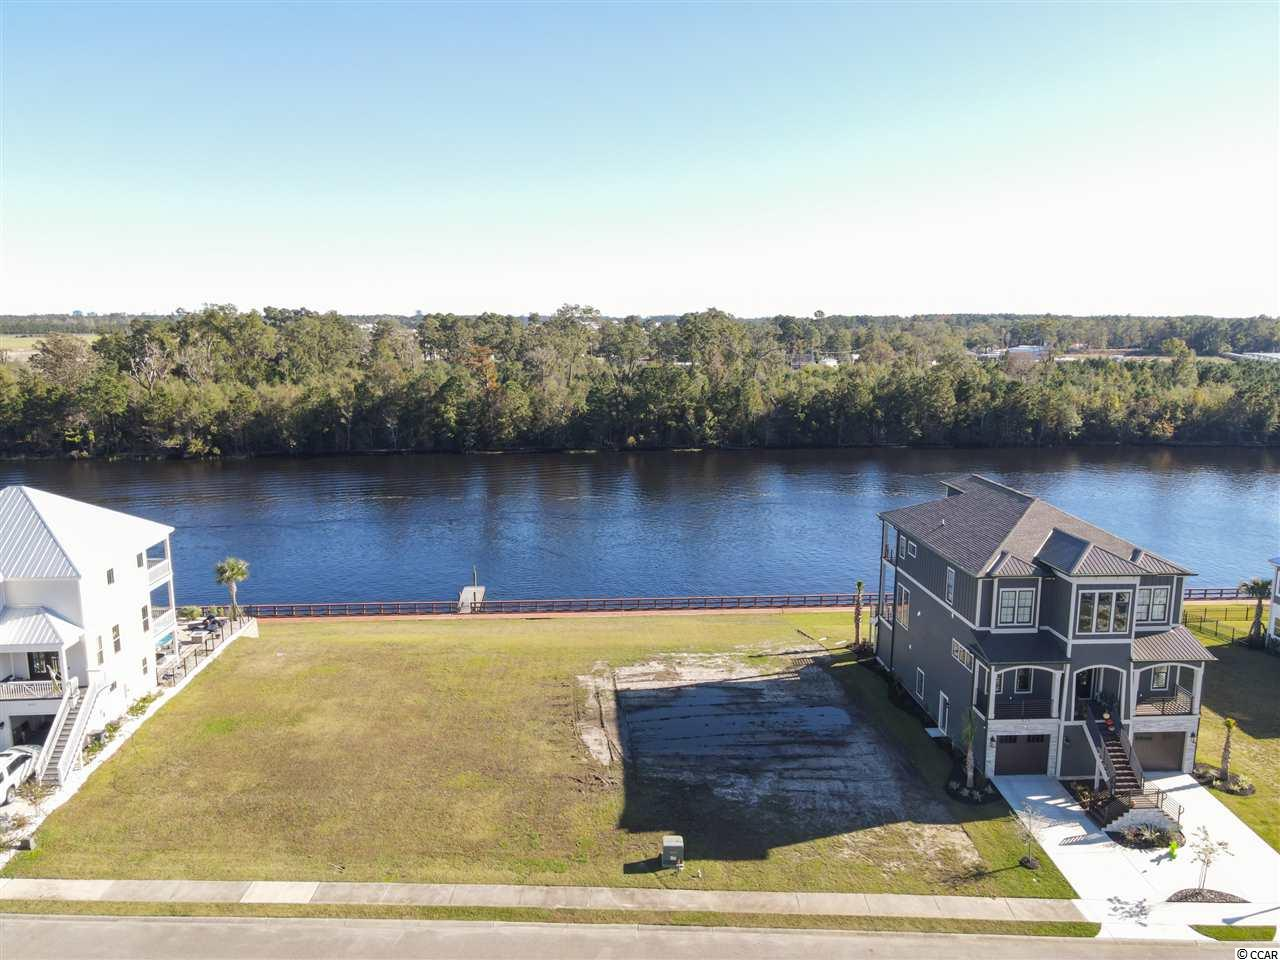 Intra Coastal Waterway lot for sale in the sought after community Boardwalk on the Waterway!. Conveniently located minutes to the airport, beach and all that Myrtle Beach and surrounding areas have to offer. Lot is located at the back of the community out of the flight path and less through traffic. Also located close to the private boat launch and storage area. These lots have been going up in price due to low inventory and priced thousands less than other Intra coastal waterway community lots in the area. Purchase now with no timeframe to build your dream home!